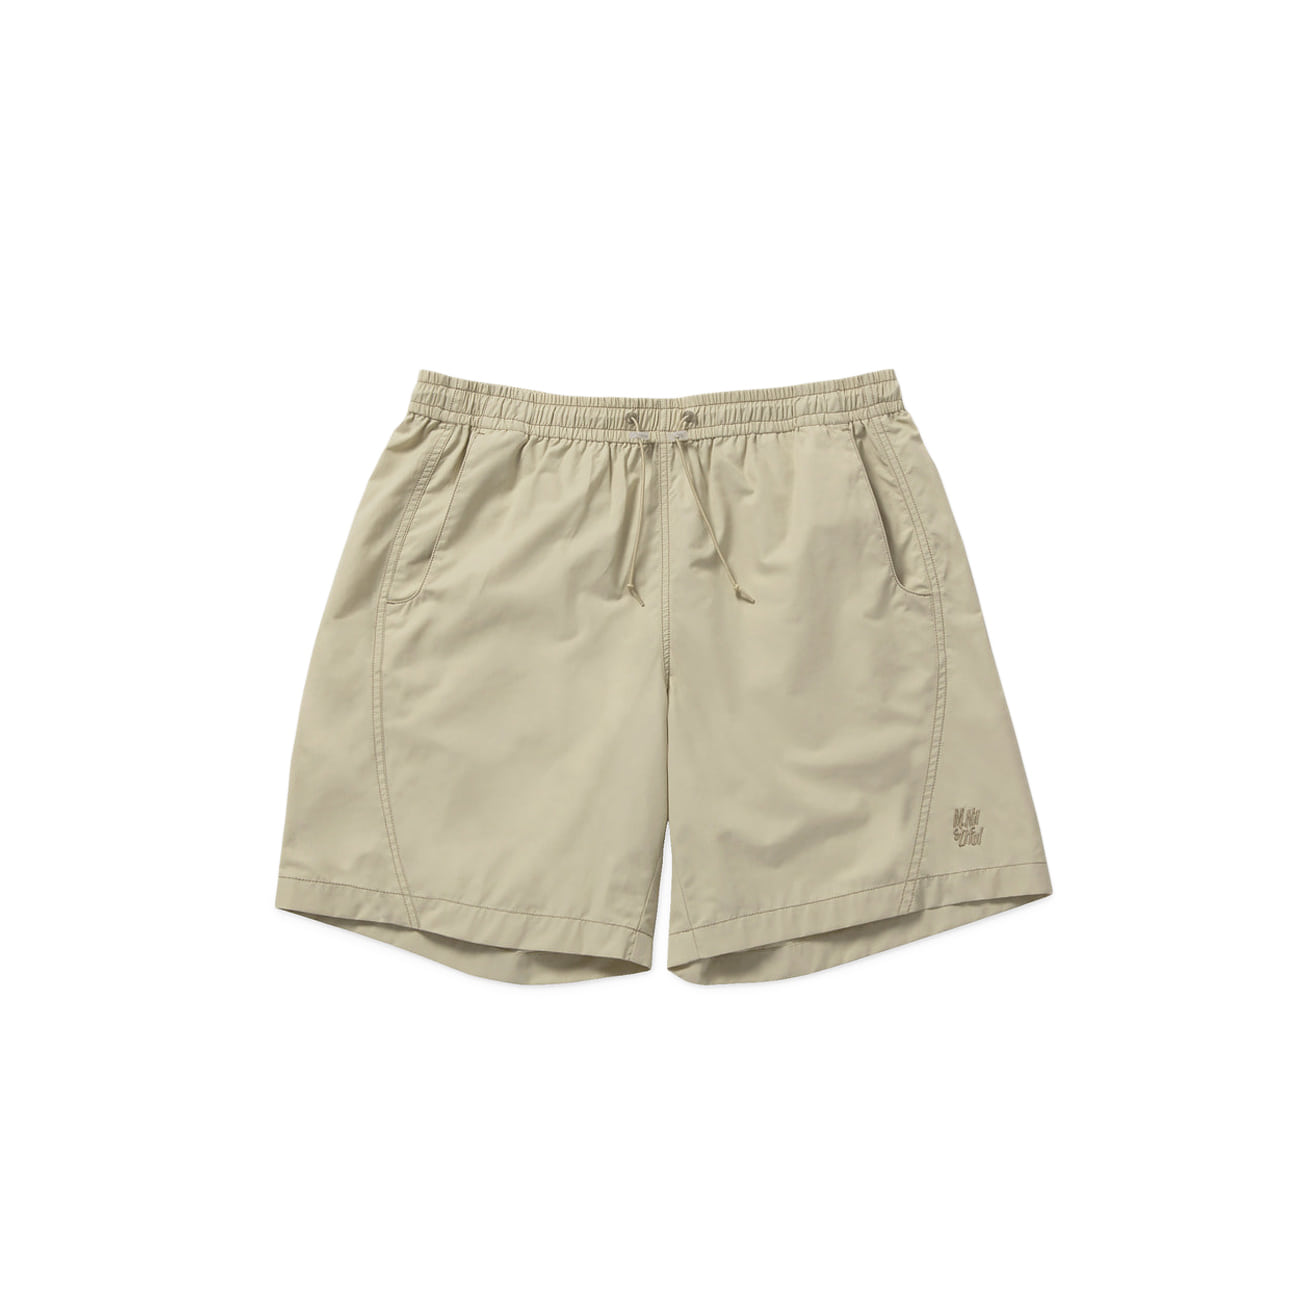 M.Nii x LIFUL Twisted Easy Shorts